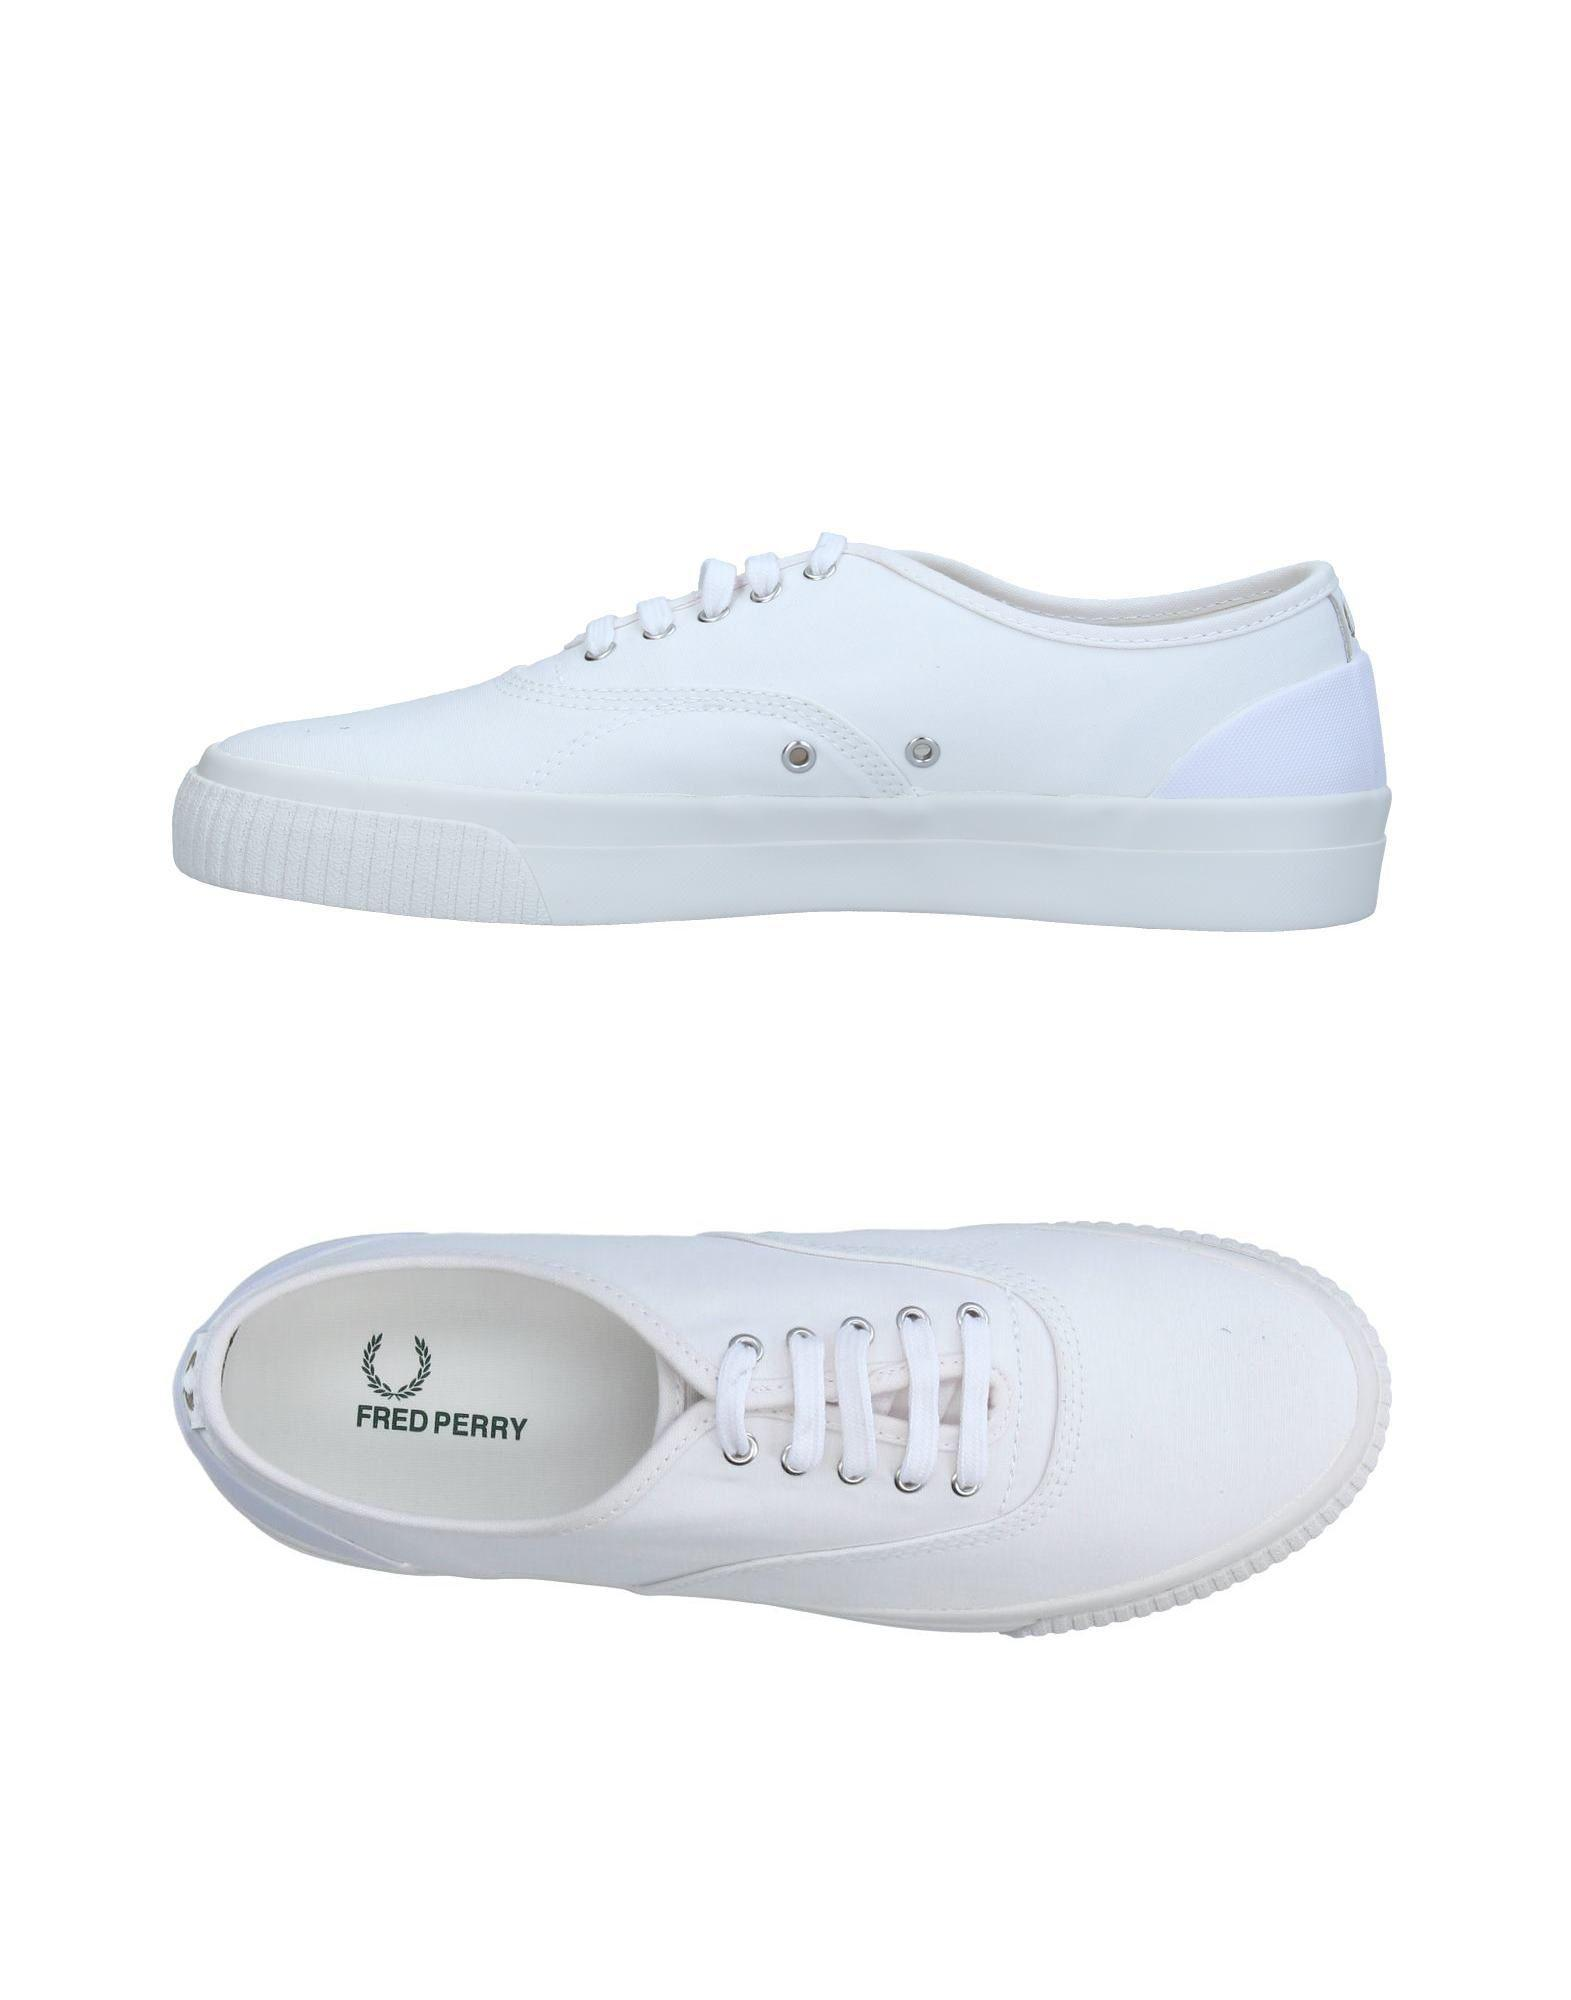 Fred Perry Bas-tops Et Chaussures De Sport 7WBSMPdbp